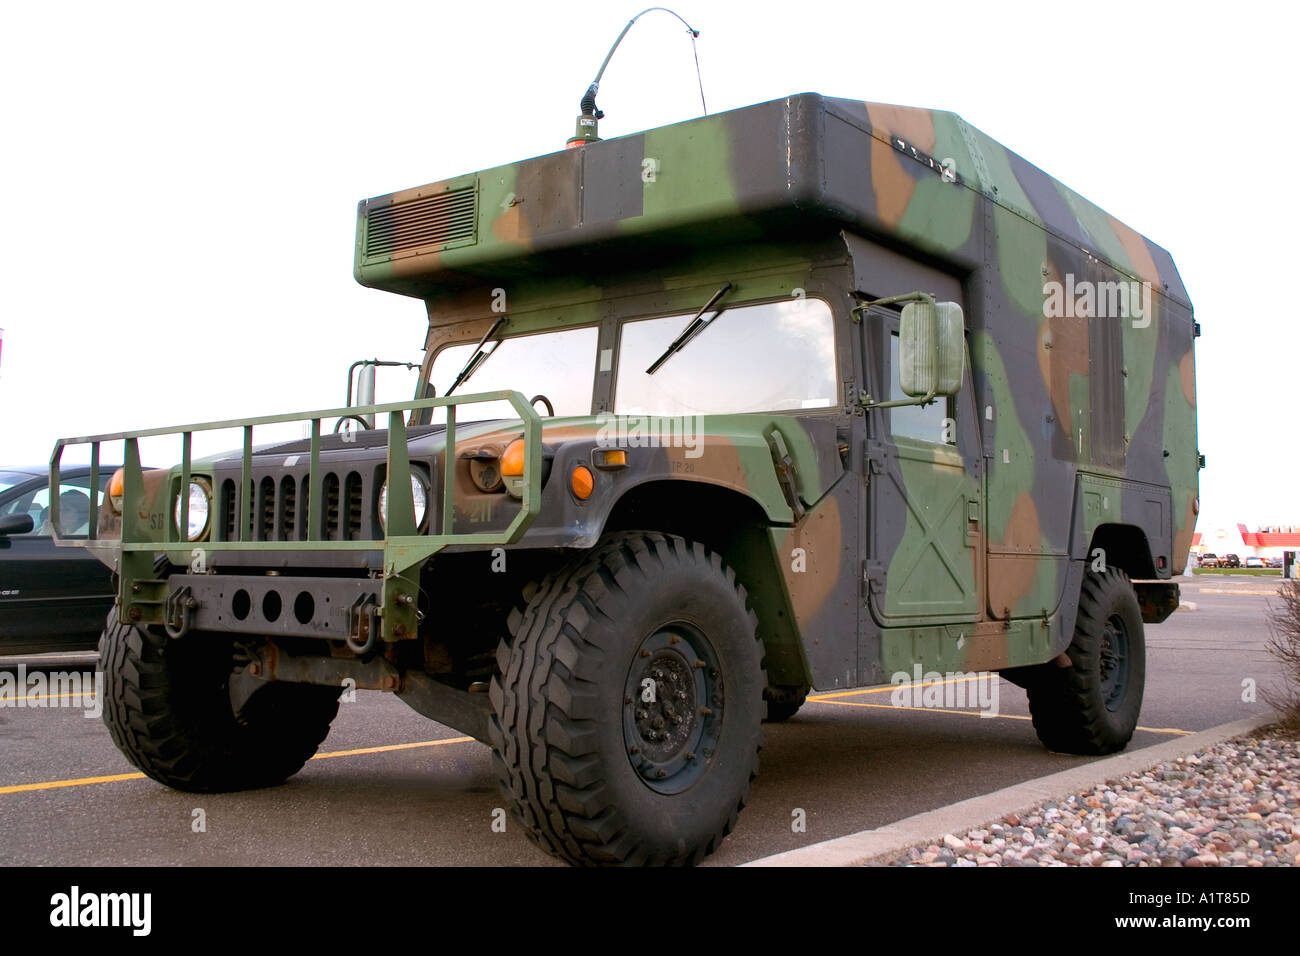 Army Hmmwv Hummer Humvee troop transport in a parking lot Clearwater Minnesota USA - Stock Image